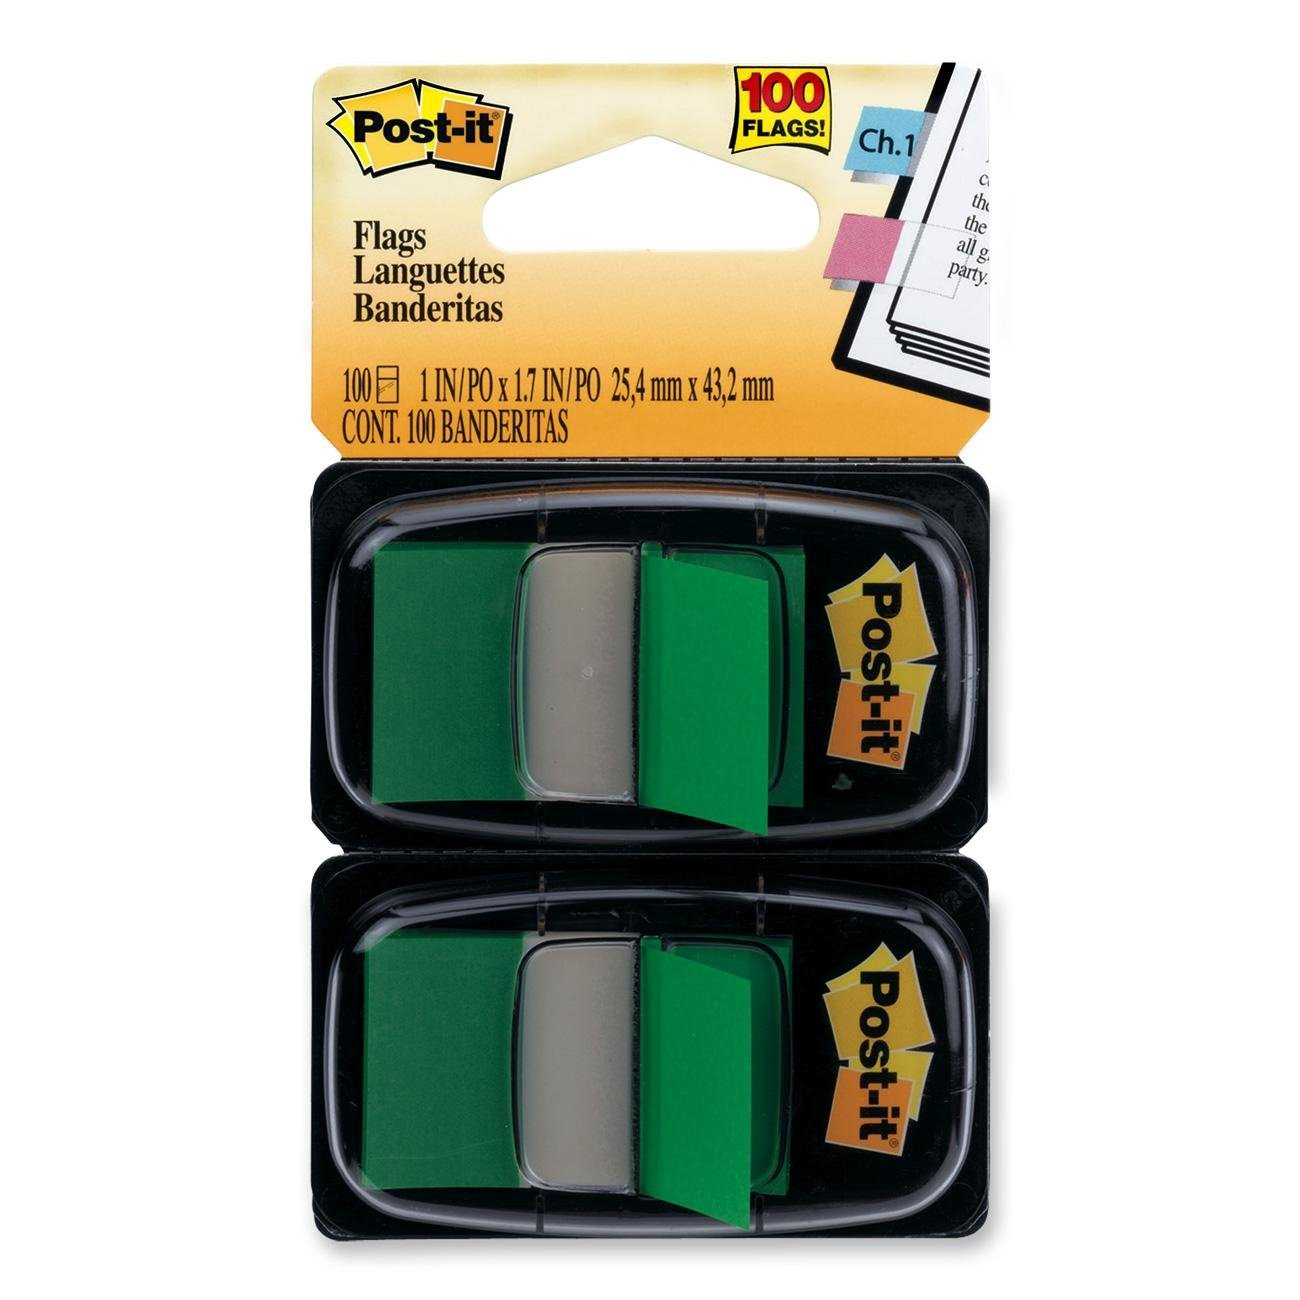 Post-it Flags, Green, 1-Inch Wide, 50/Dispenser, 2-Dispensers/Pack, Eye-catching, colorful flags are easy to spot and have space to write By Postit Ship from US